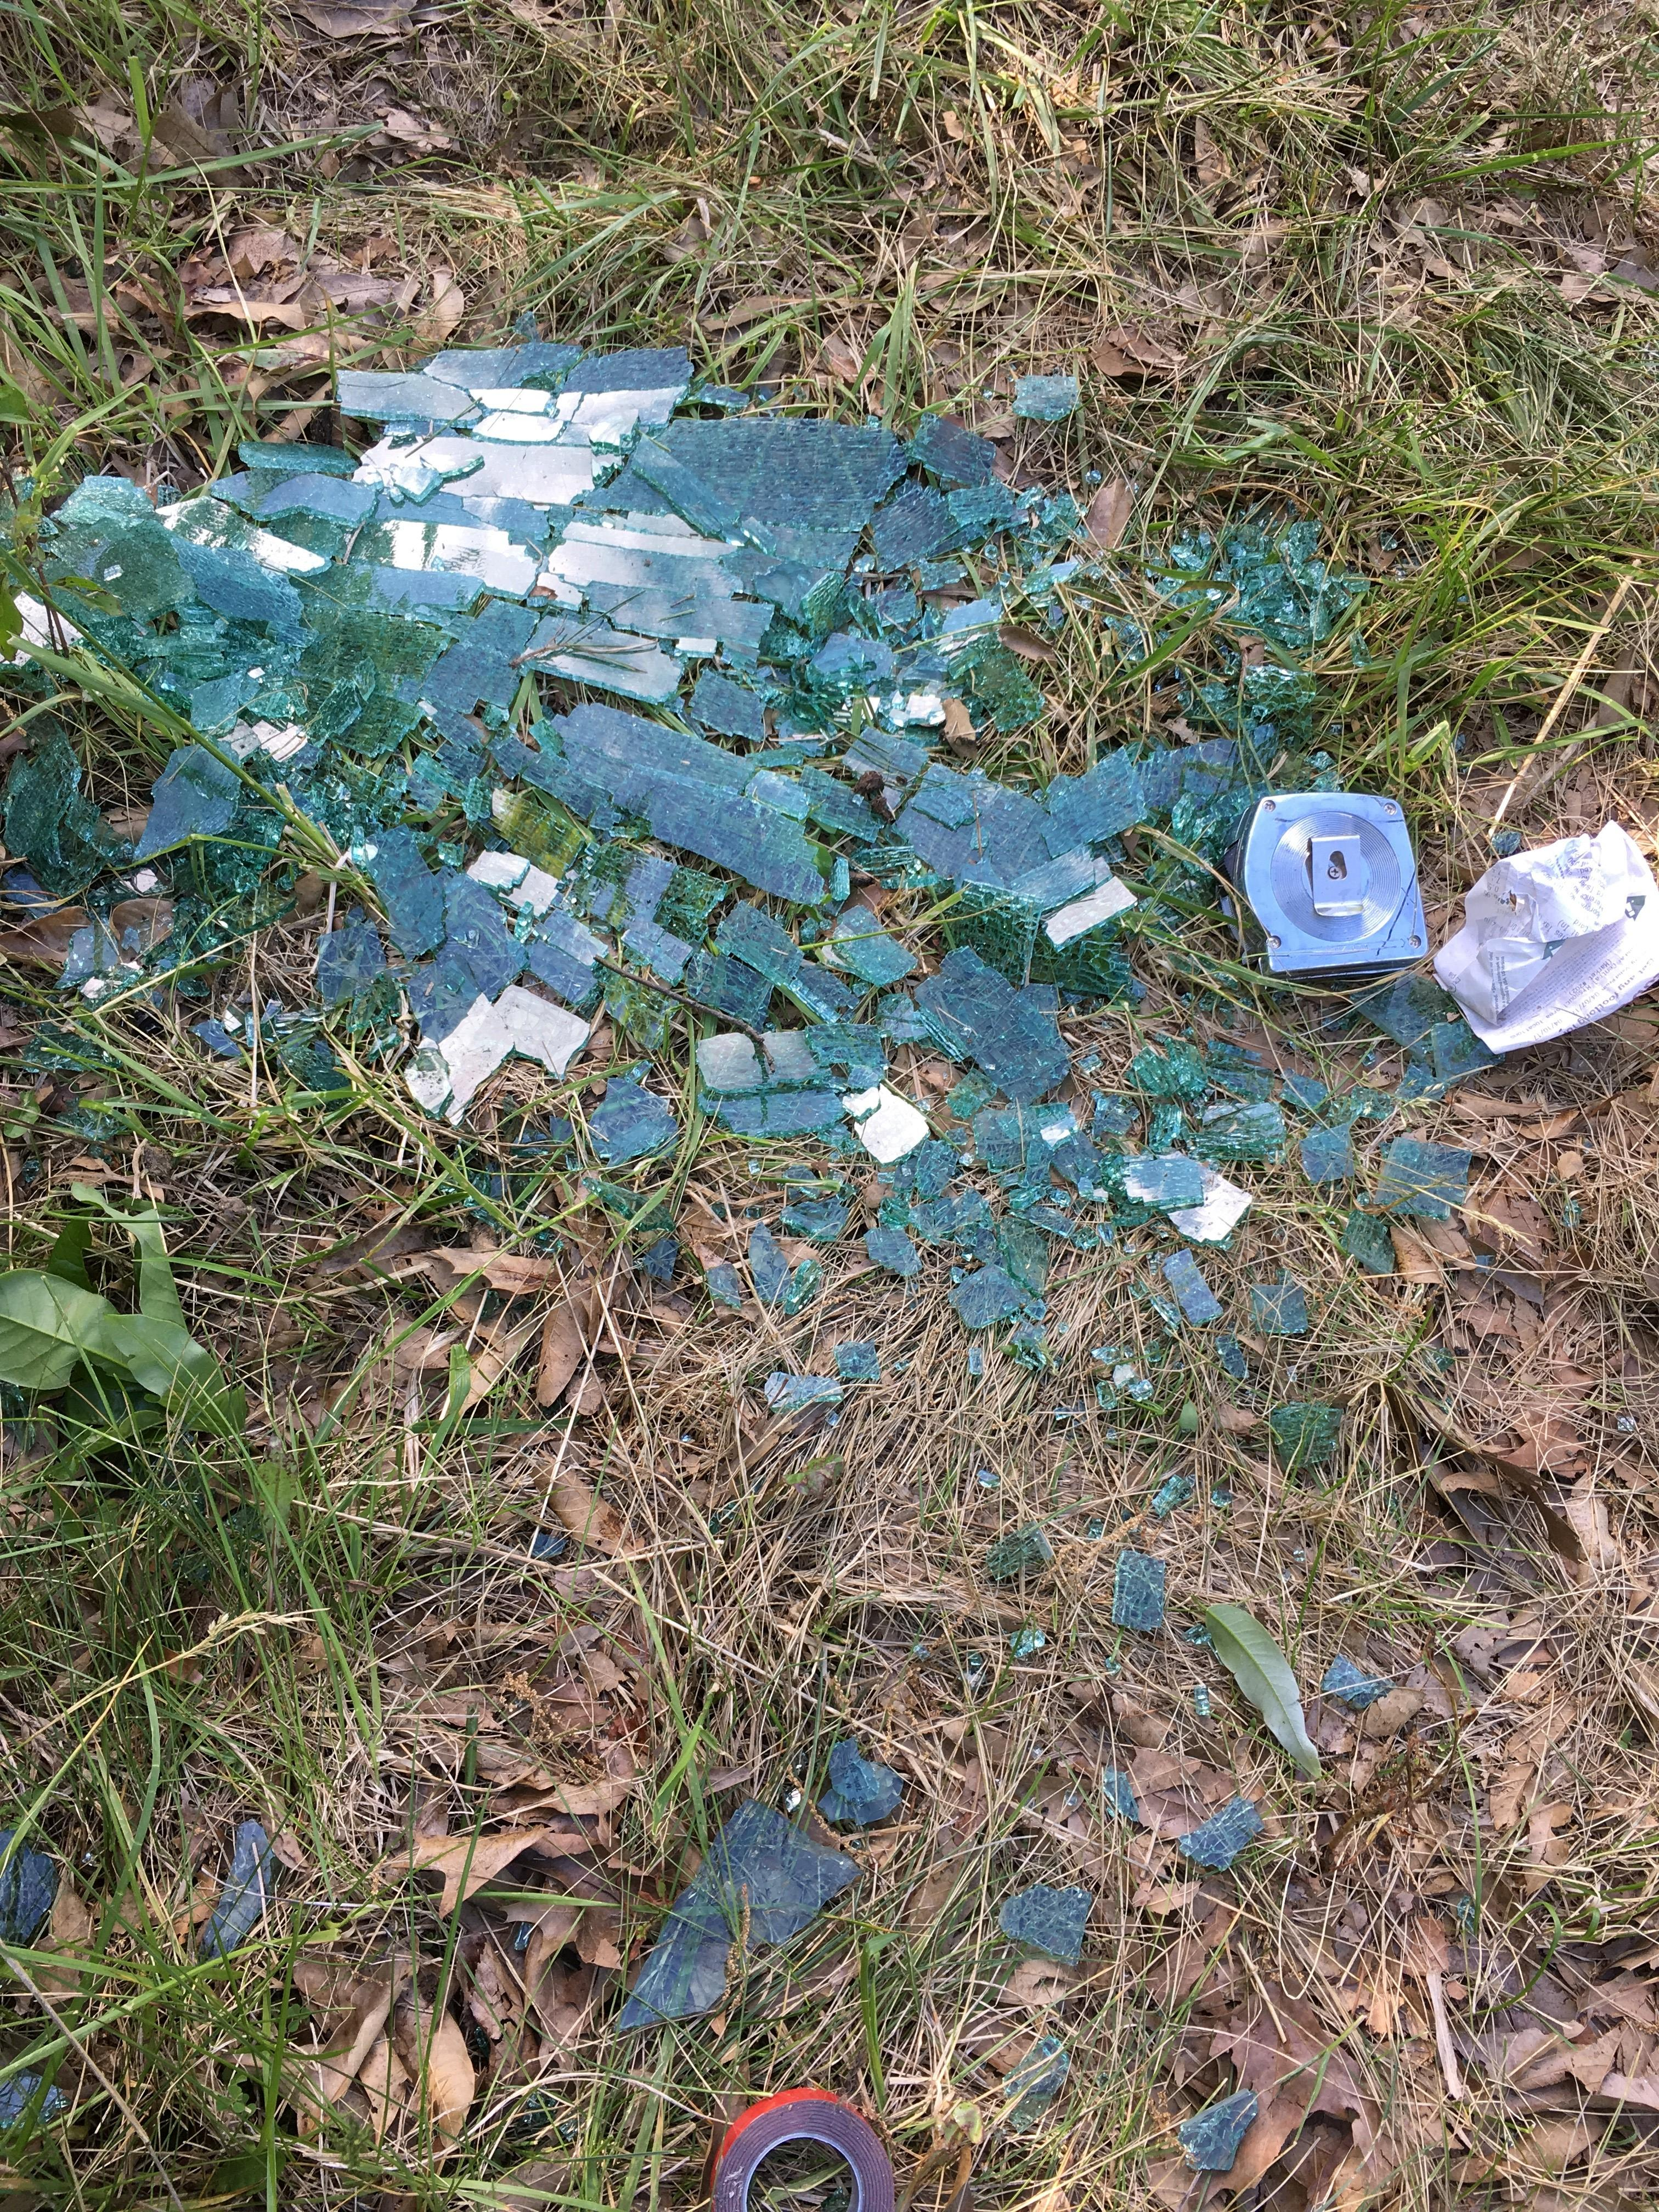 Broken glass from the wrecked SUV's window was scattered in the grass along the road where the crash happened. (John Garlock/KTVO)